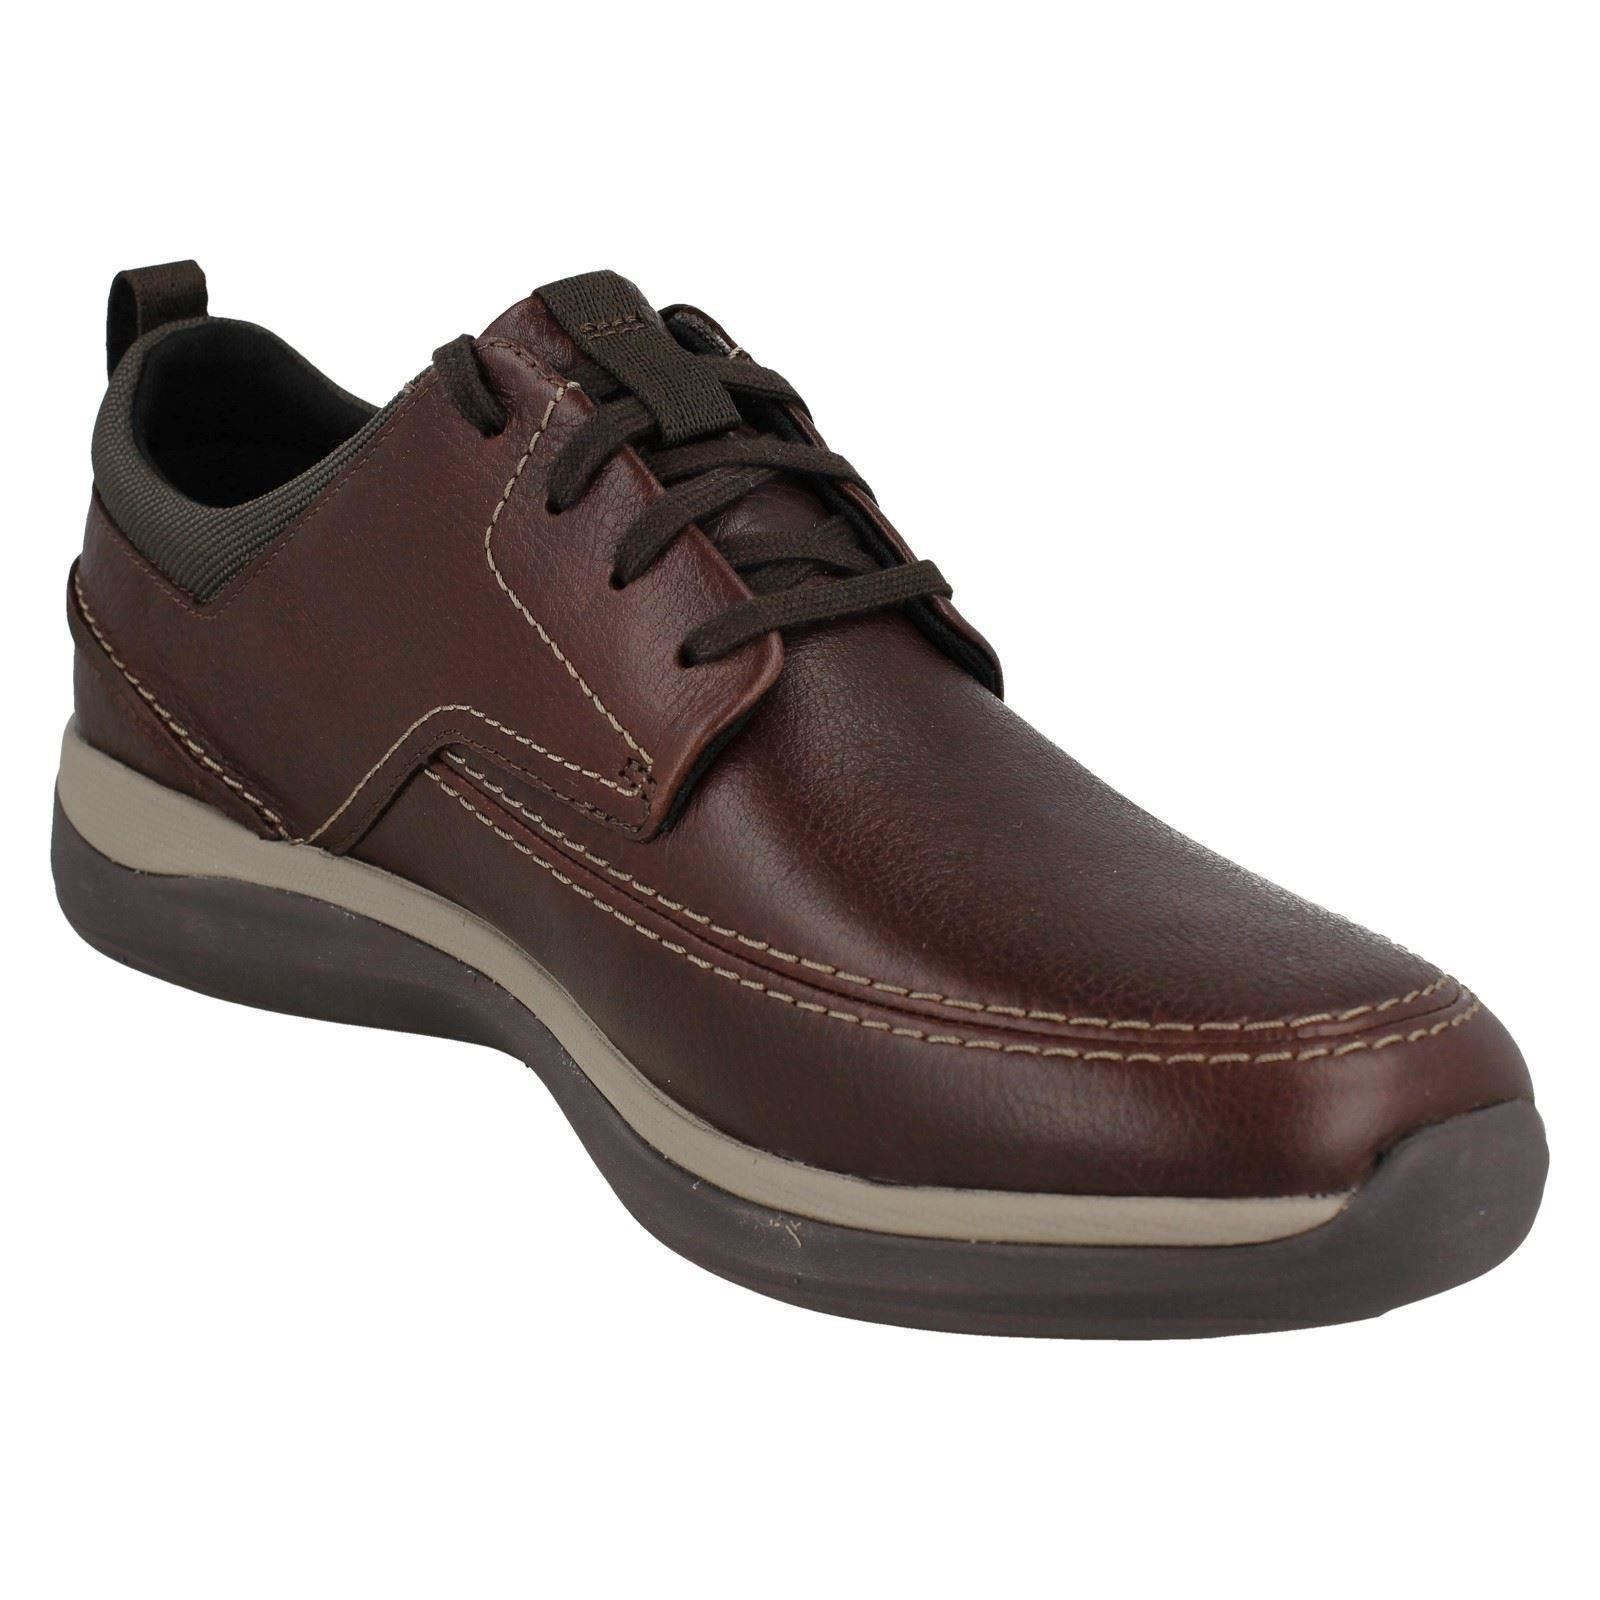 Mens-Unstructured-by-Clarks-Lace-Up-Shoes-039-Garratt-Street-039 thumbnail 16